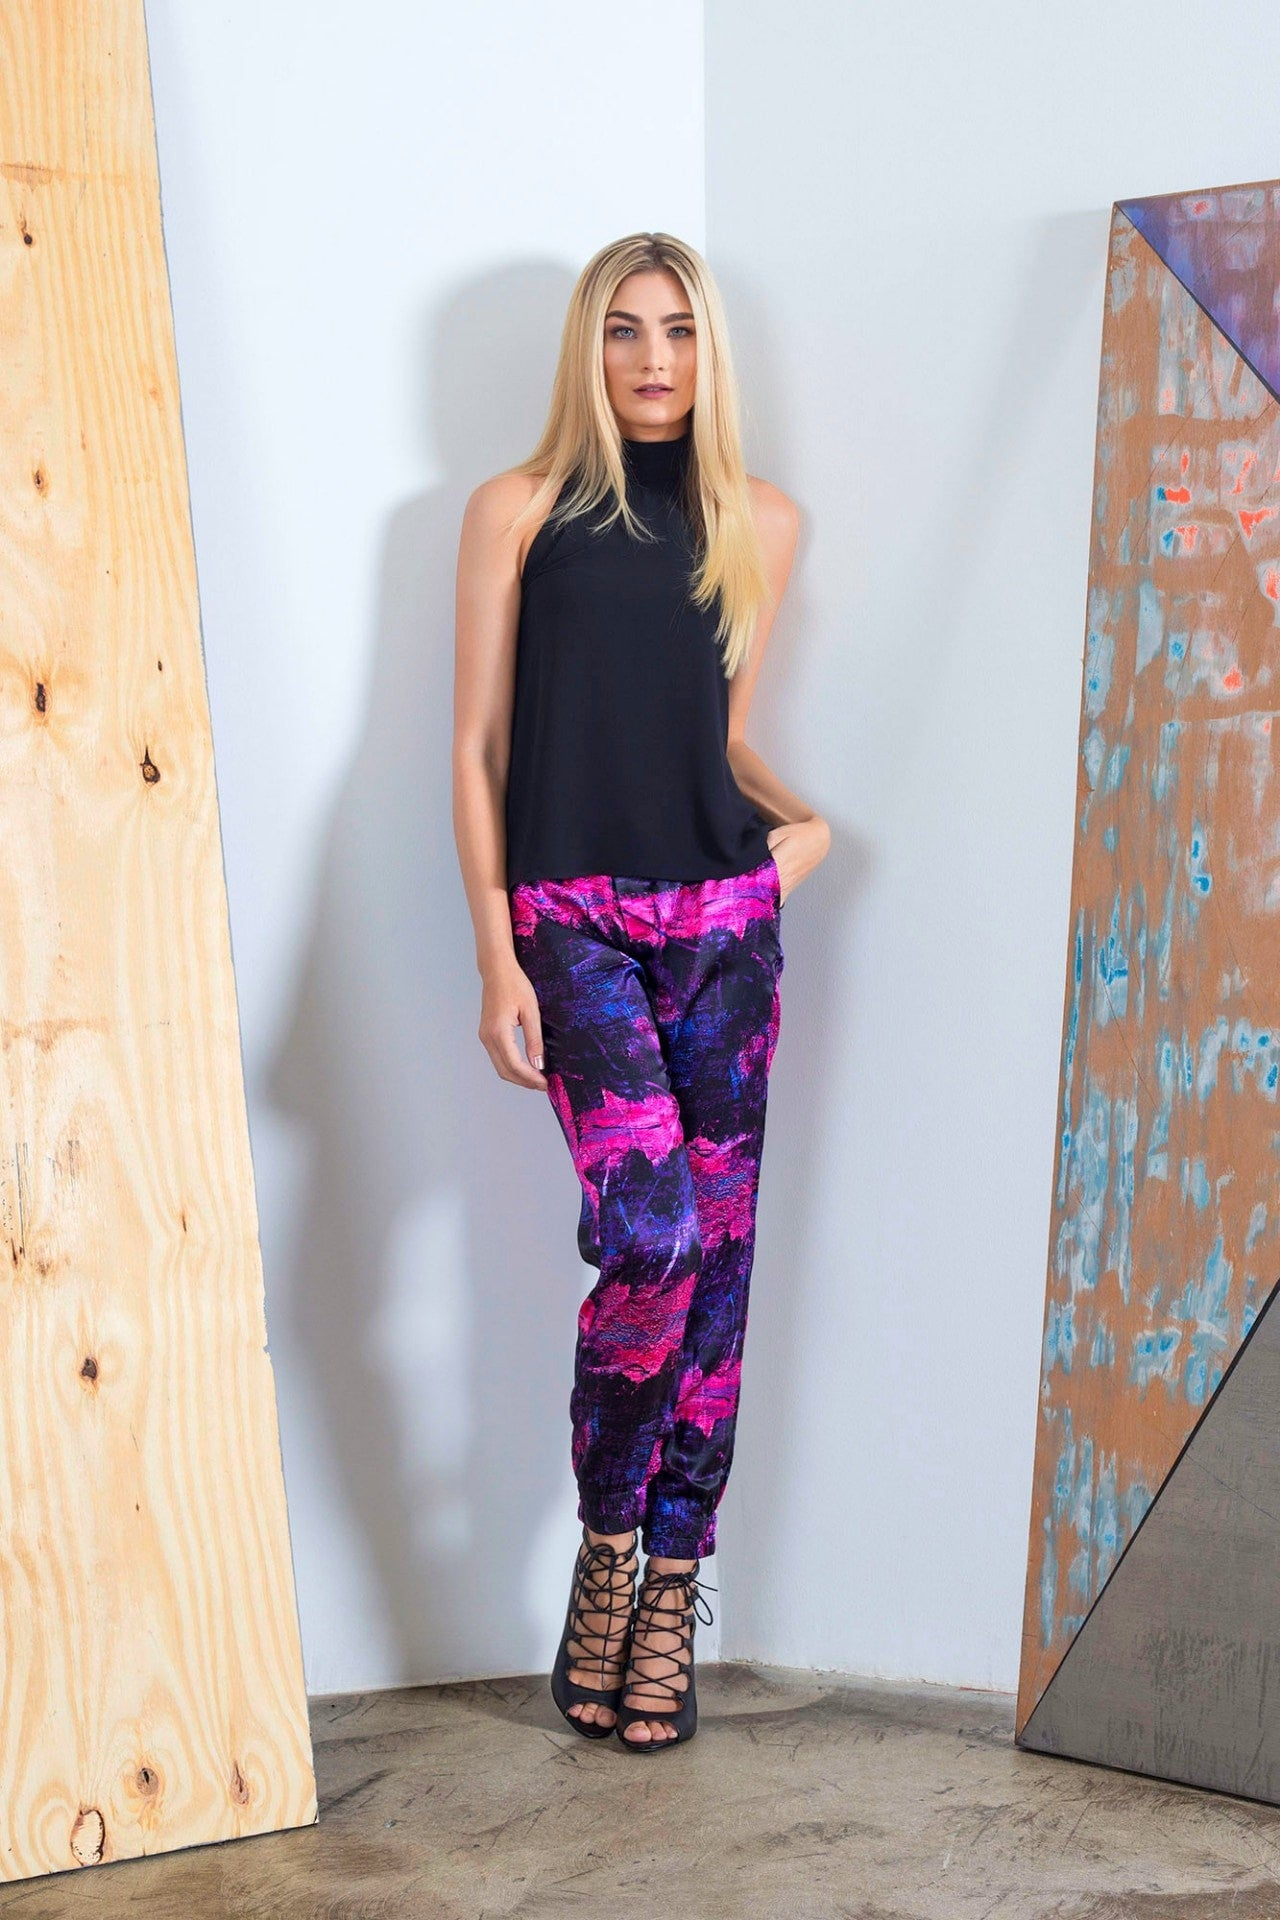 Styled view of trendy women jogger pants with magenta, purple and black art by artist Damian Stamer